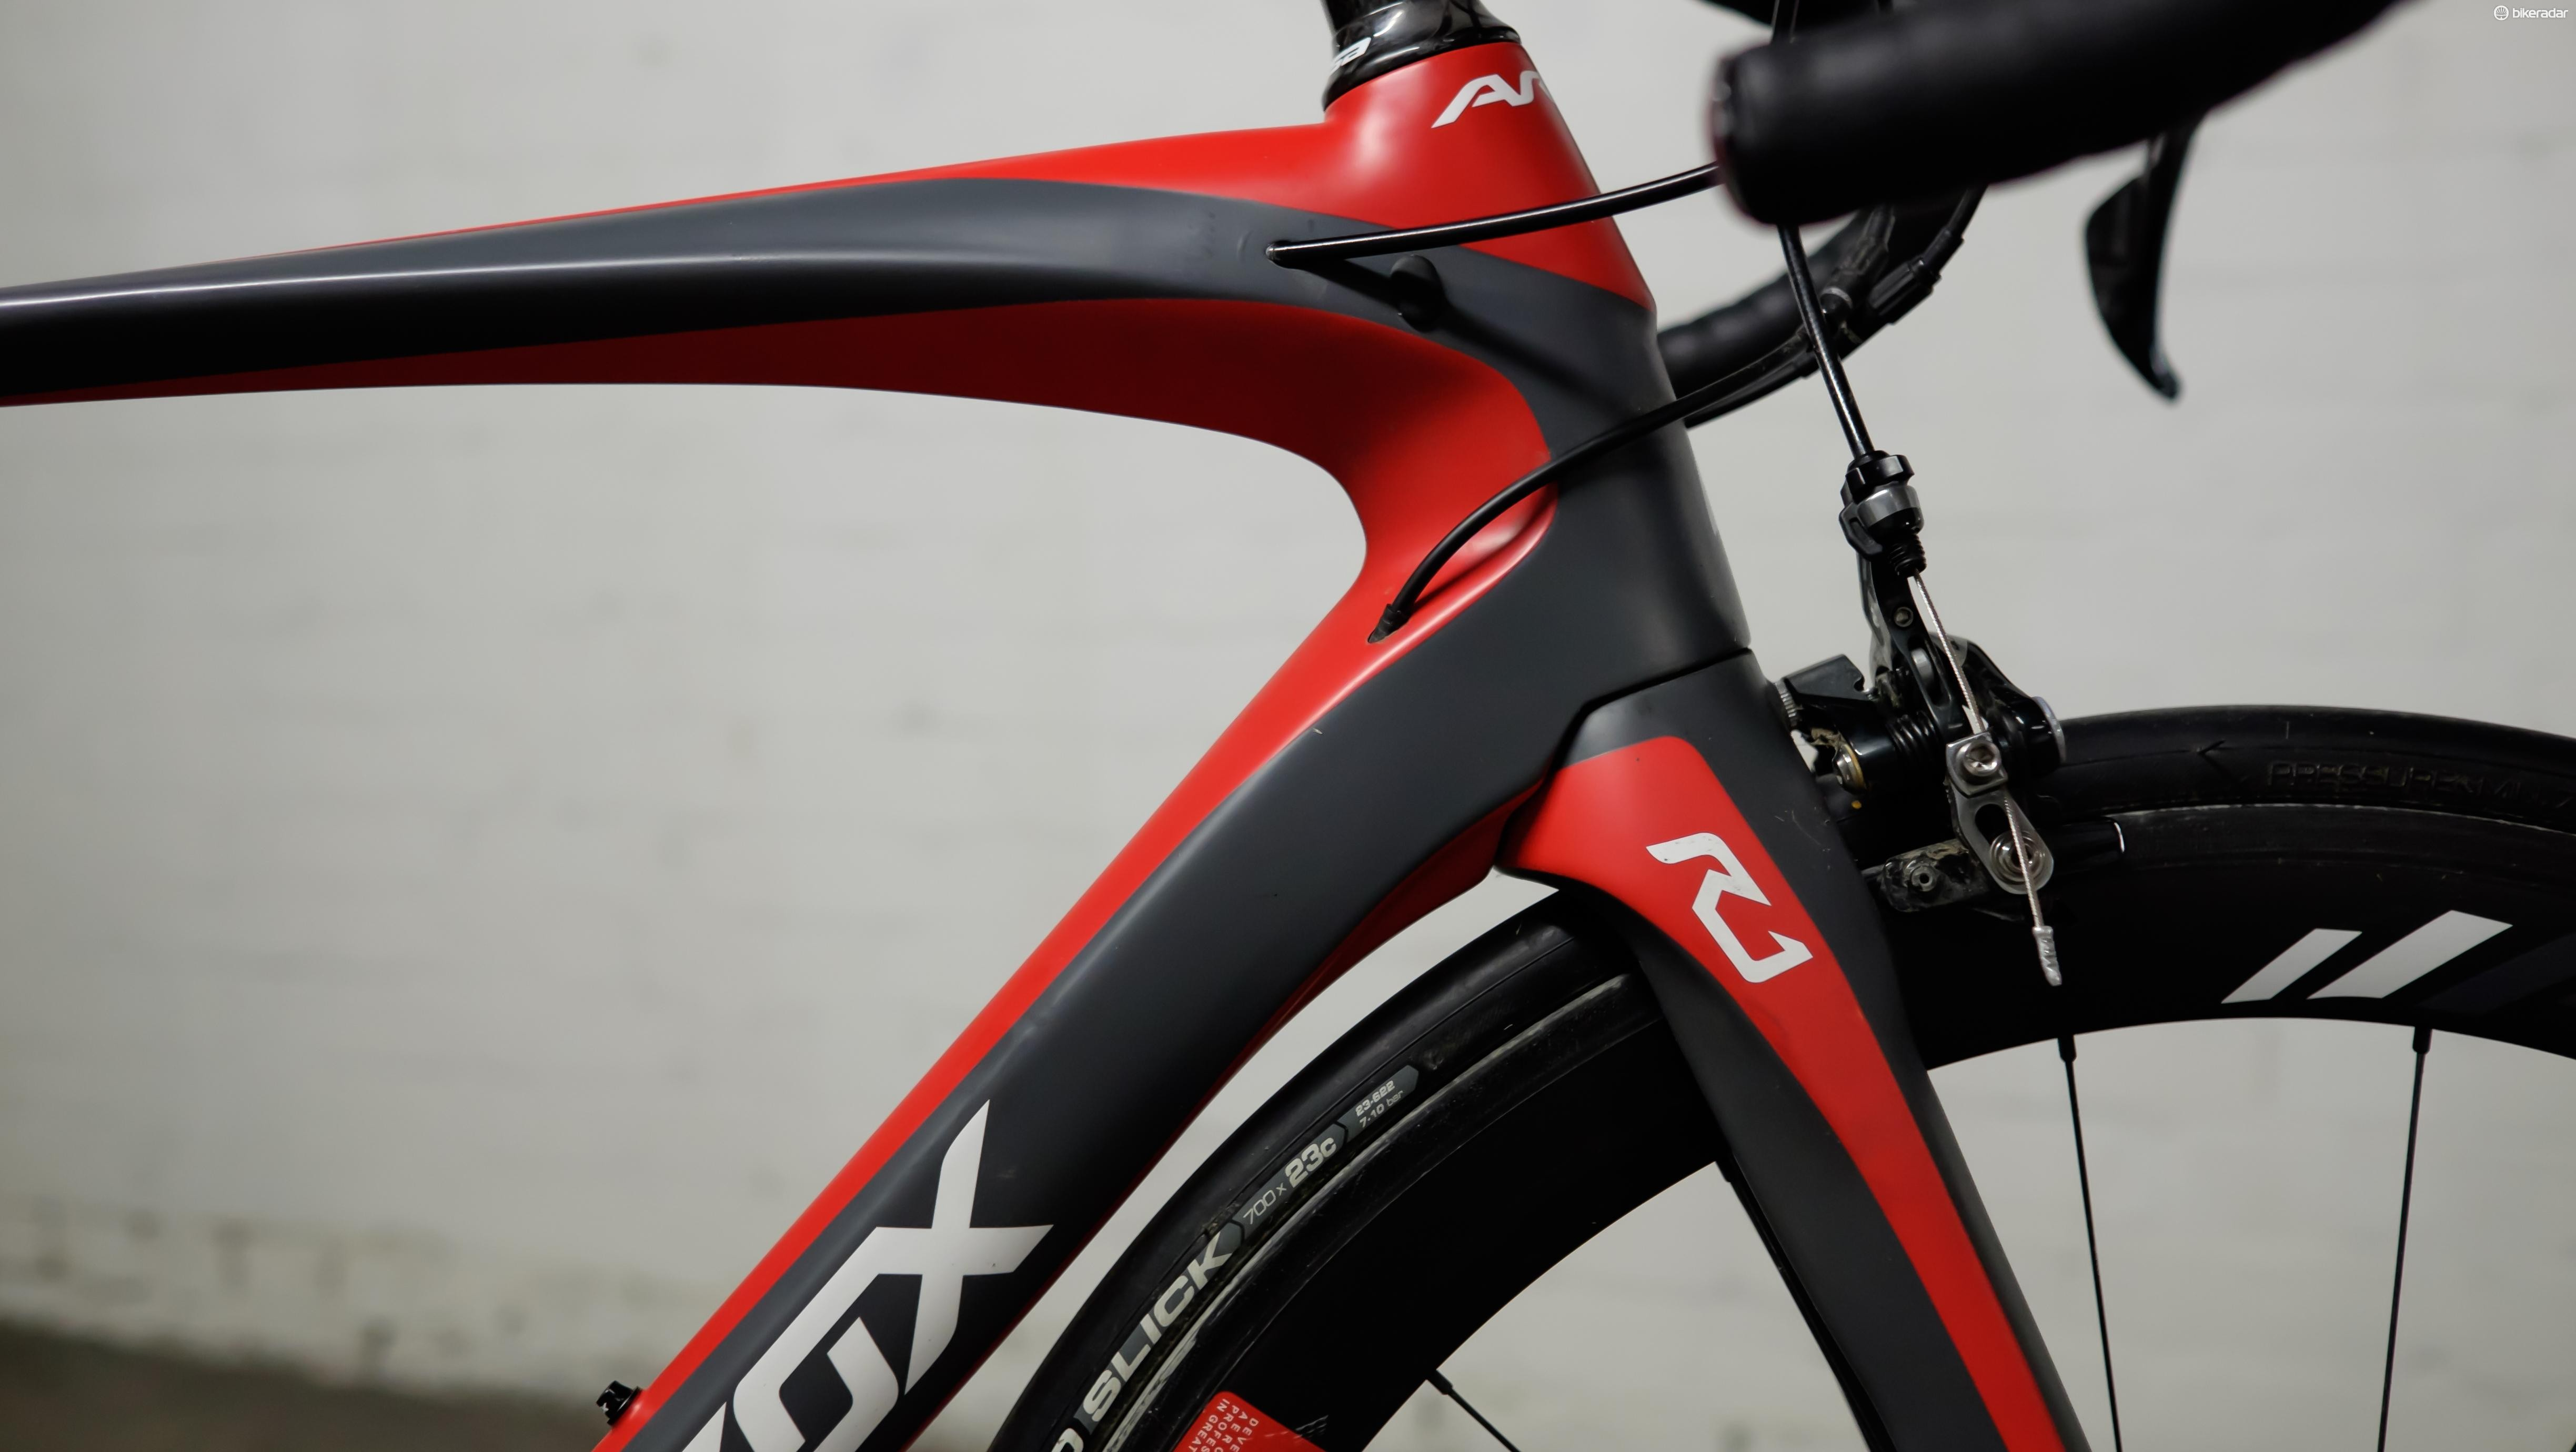 The 'shoulder blade' of the fork integrates neatly into a sculpted section of the frame's downtube